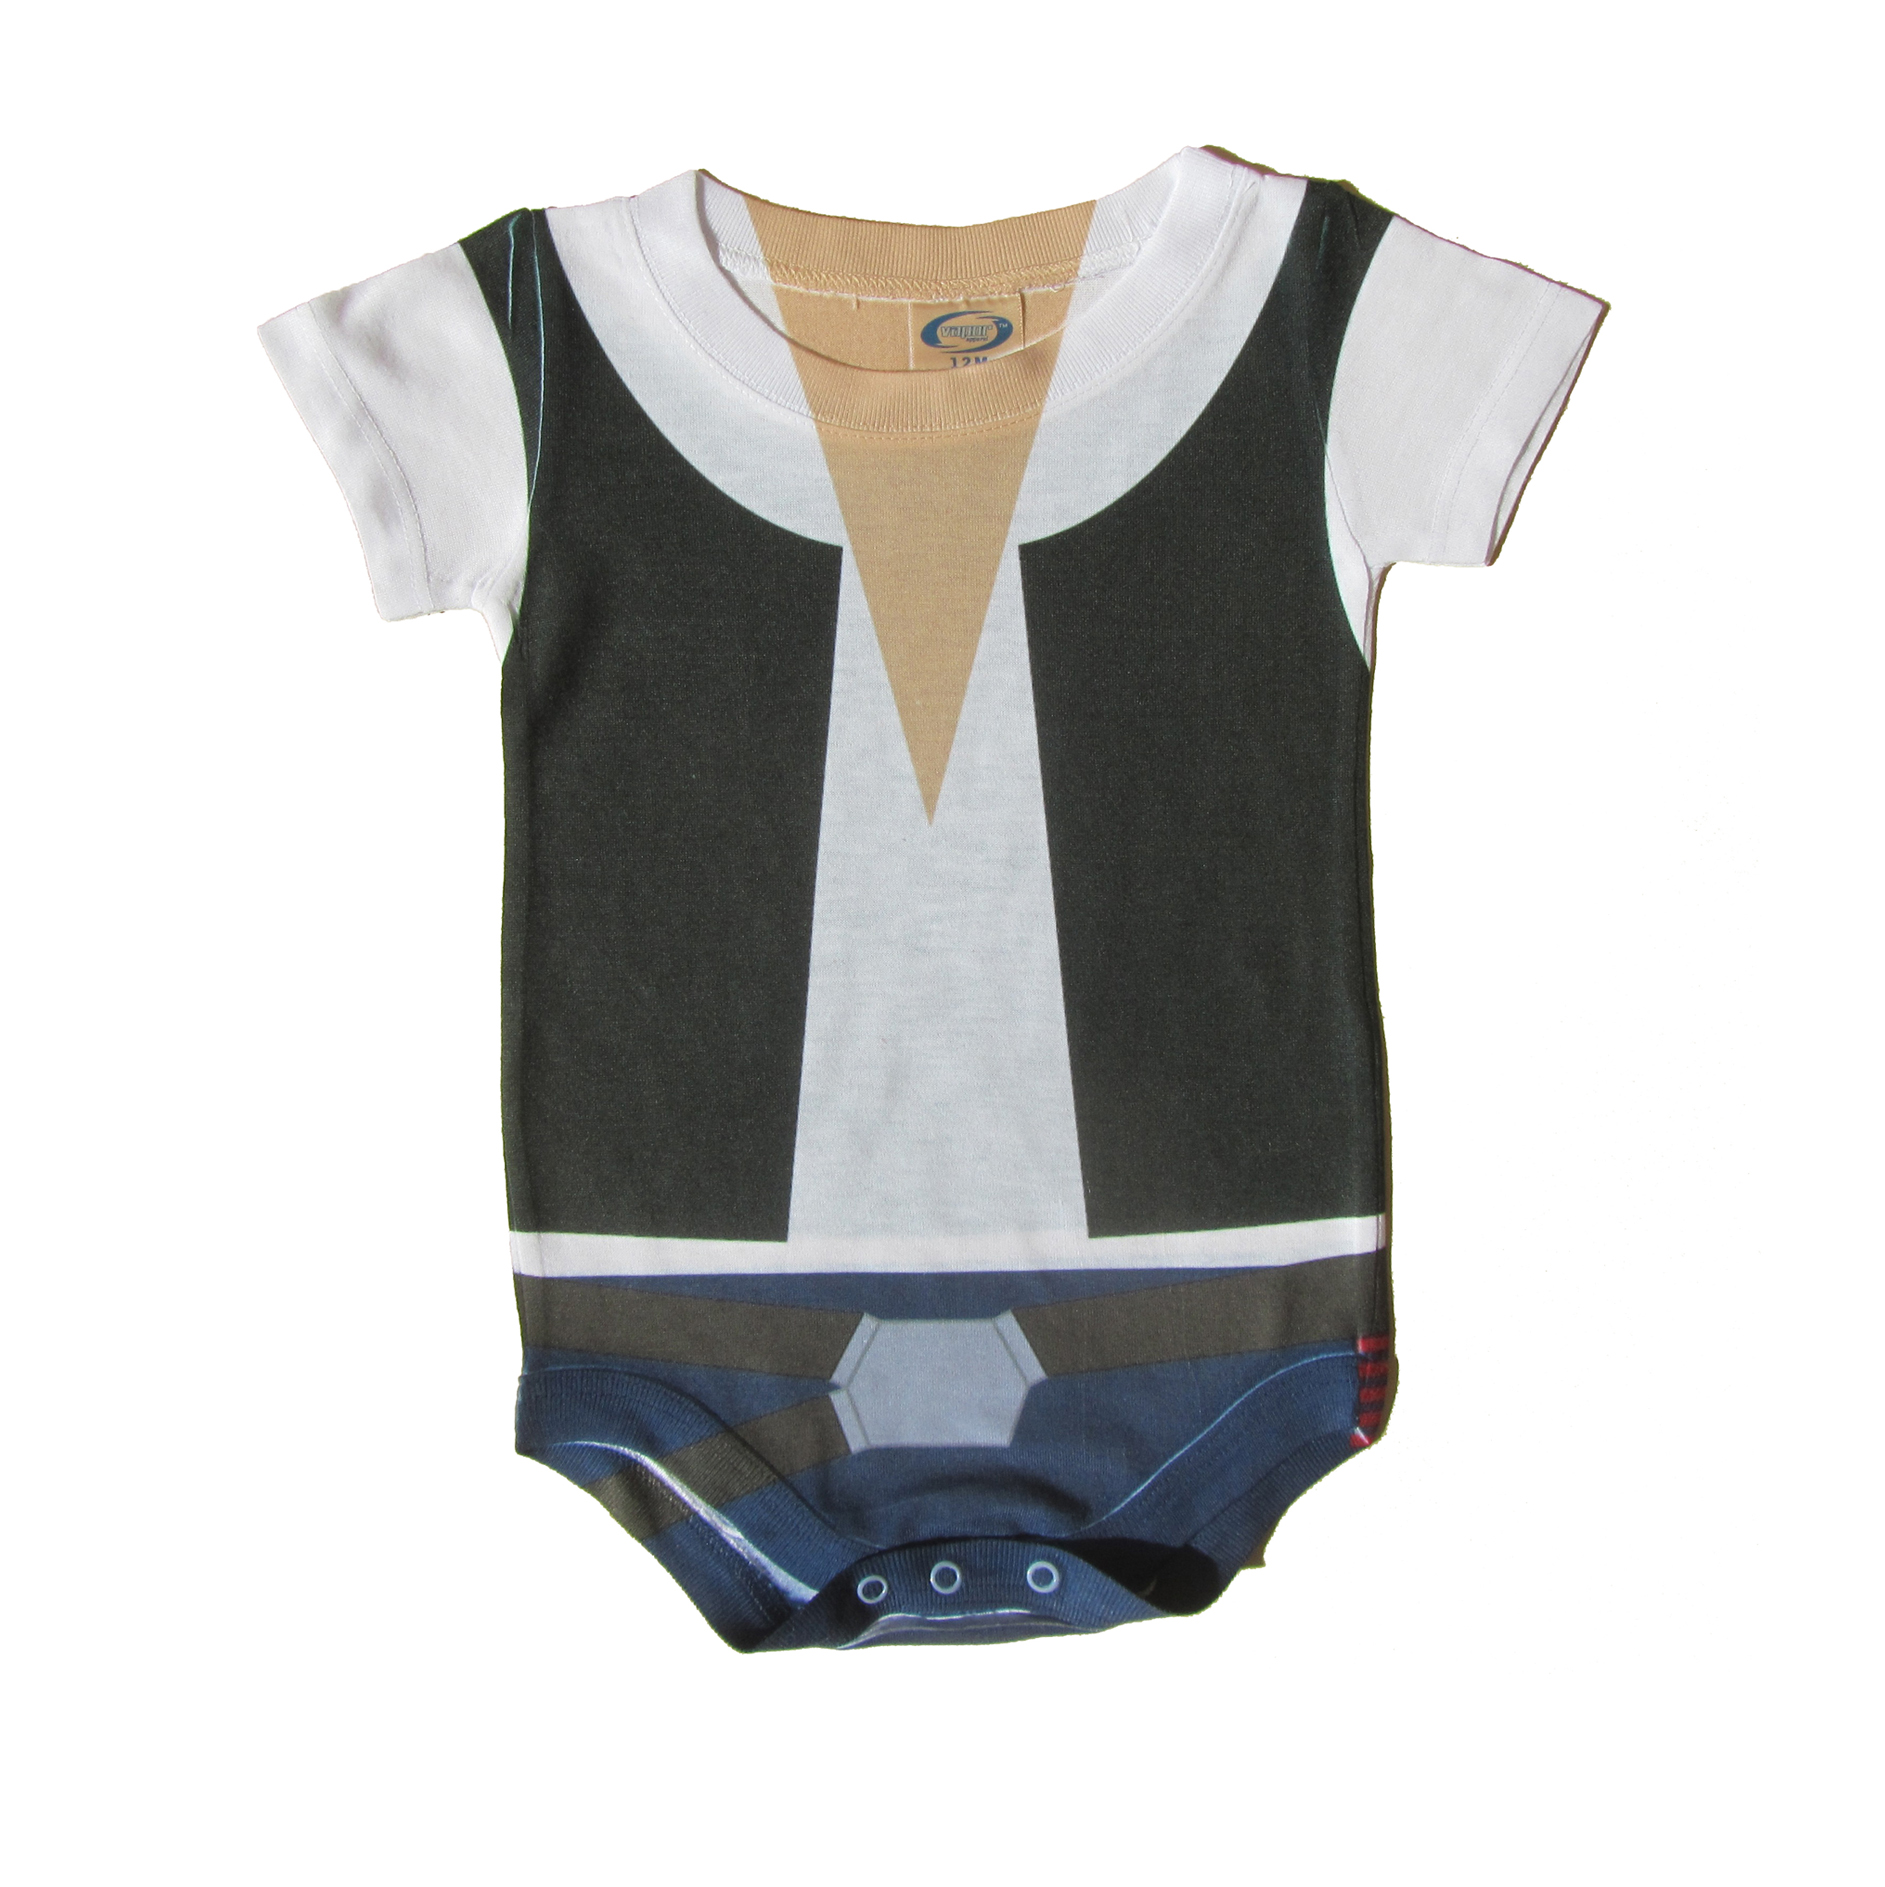 Awesome Star Wars Han Solo Onesie And Toddler T-Shirt ...